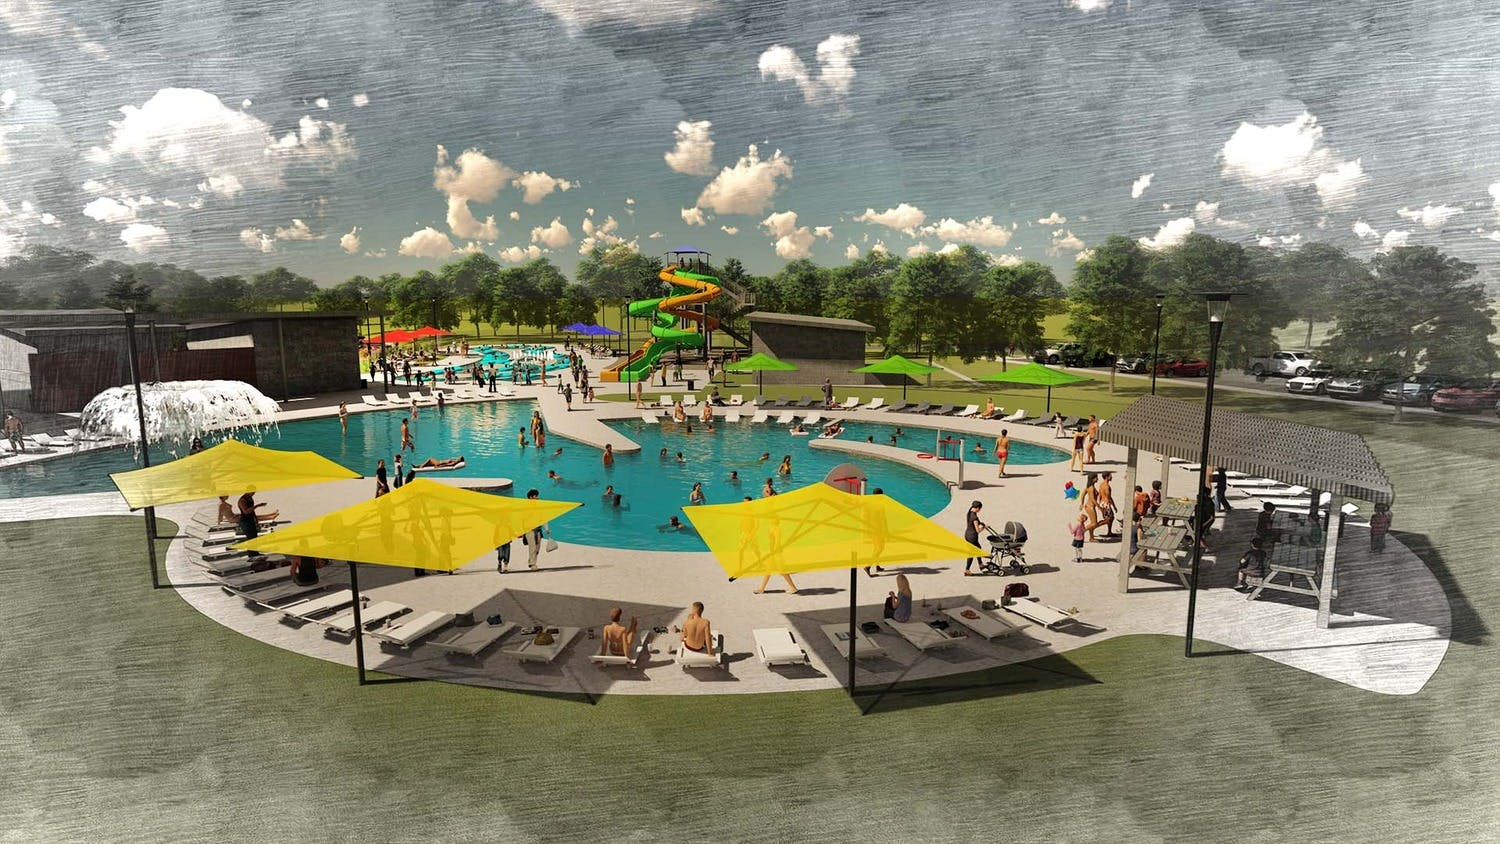 Our view: Local Public Art to be Added to Thompson Park Aquatic Facility, Other Parks cover image